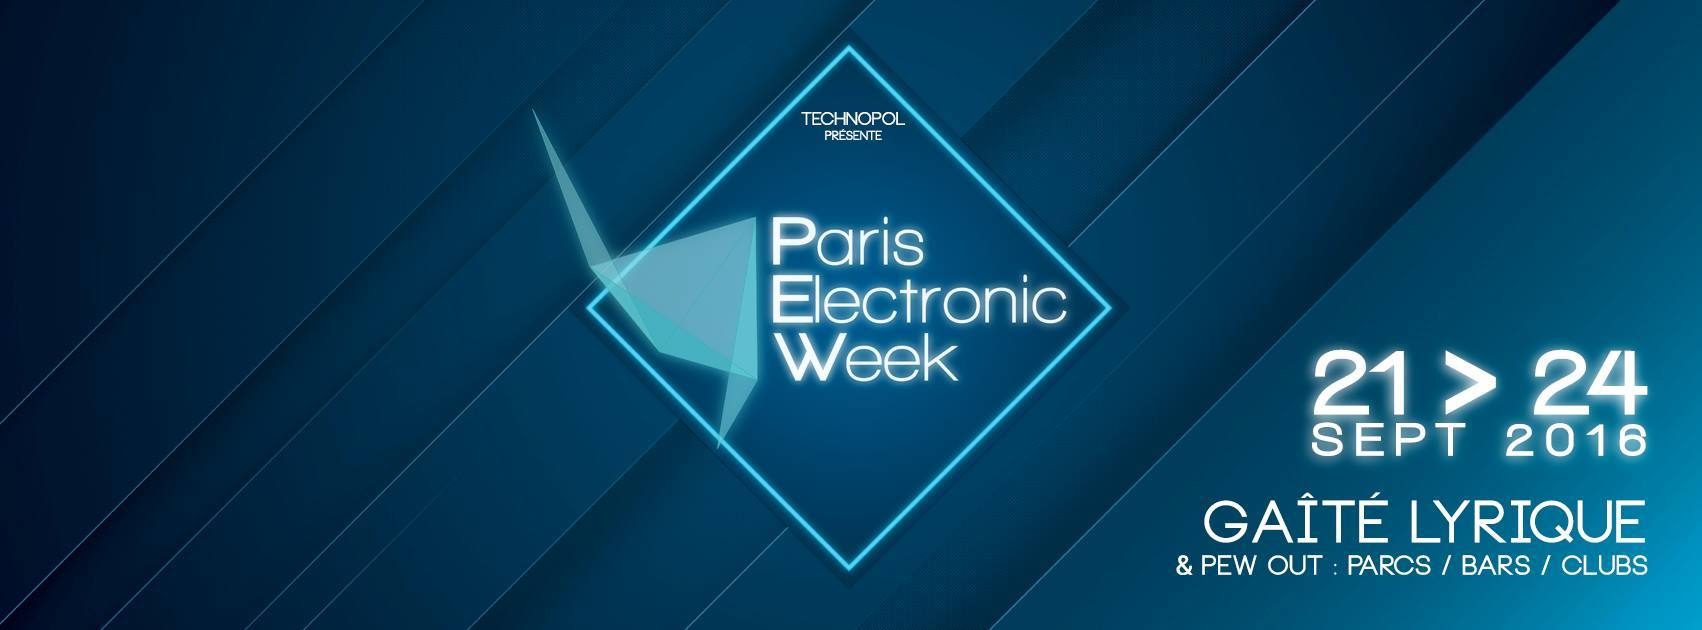 Paris Electronic Week